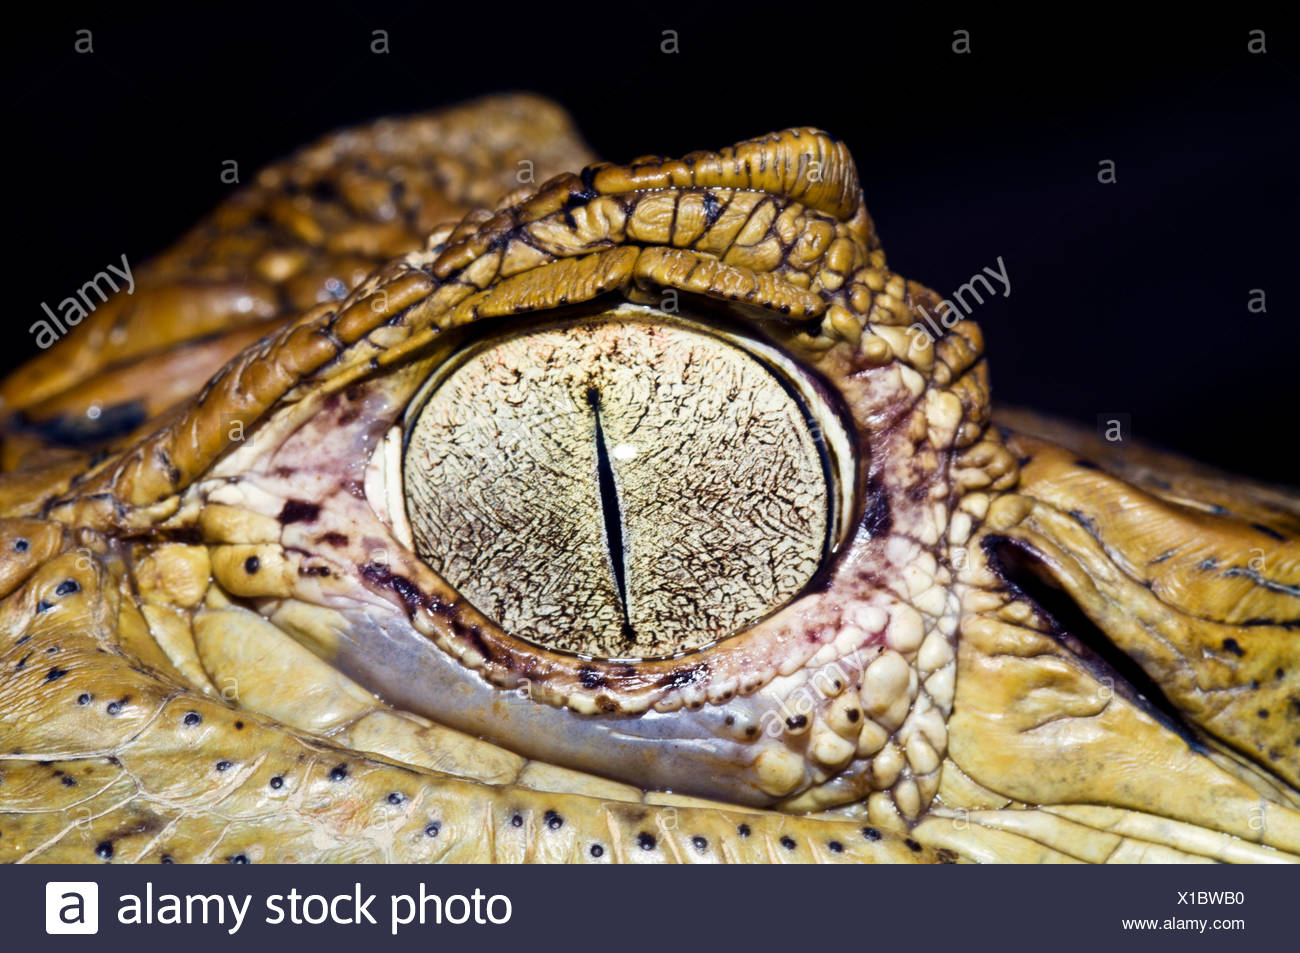 the textured and leathery scales on the skin surround the eye of a